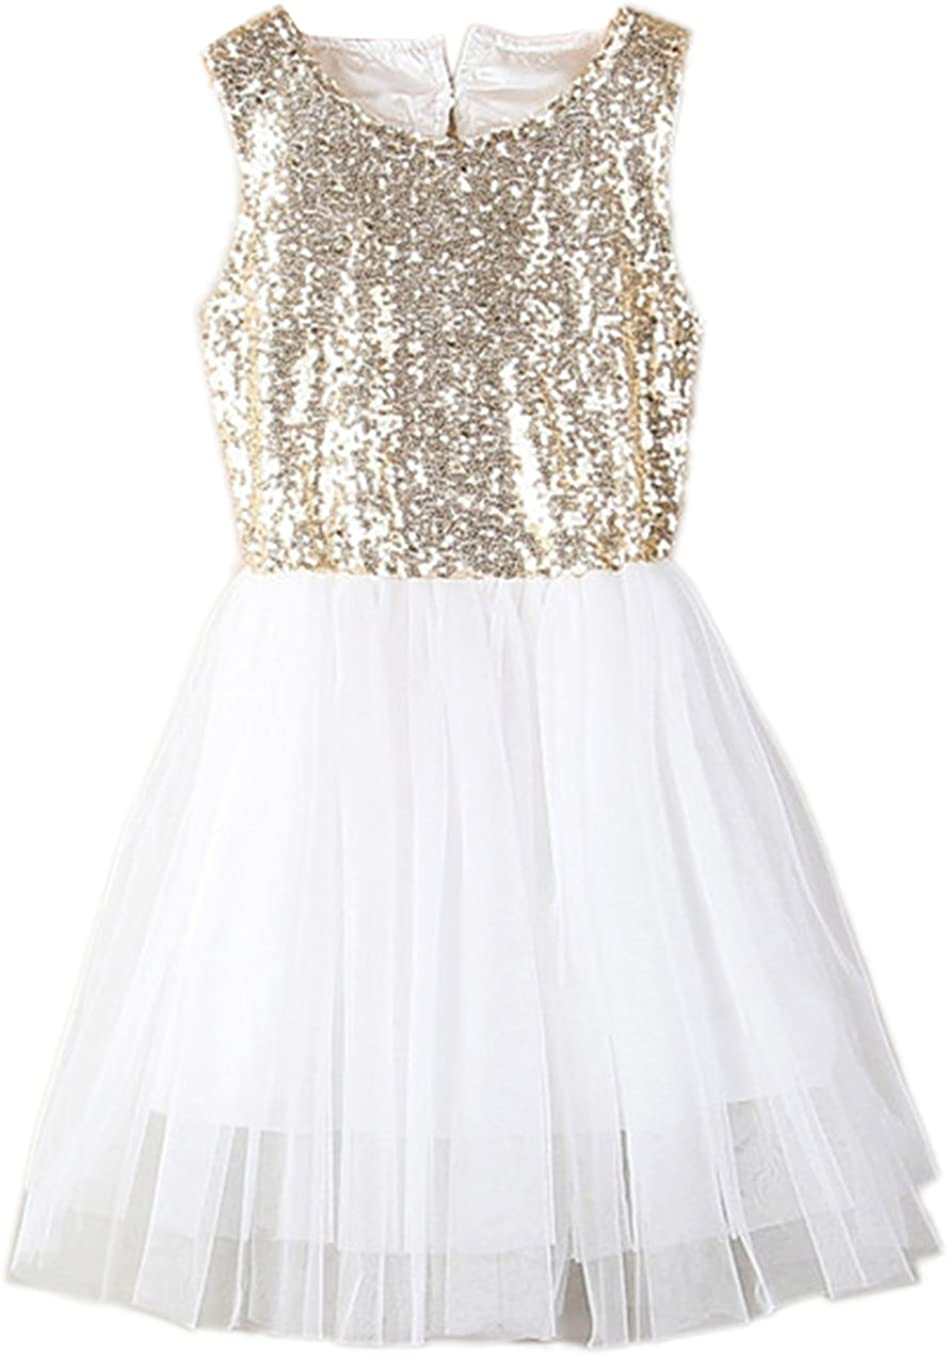 StylesILove Toddler Kids Gold Sequin Tulle Heart-Shape Back Sleeveless Flower Girl Dress